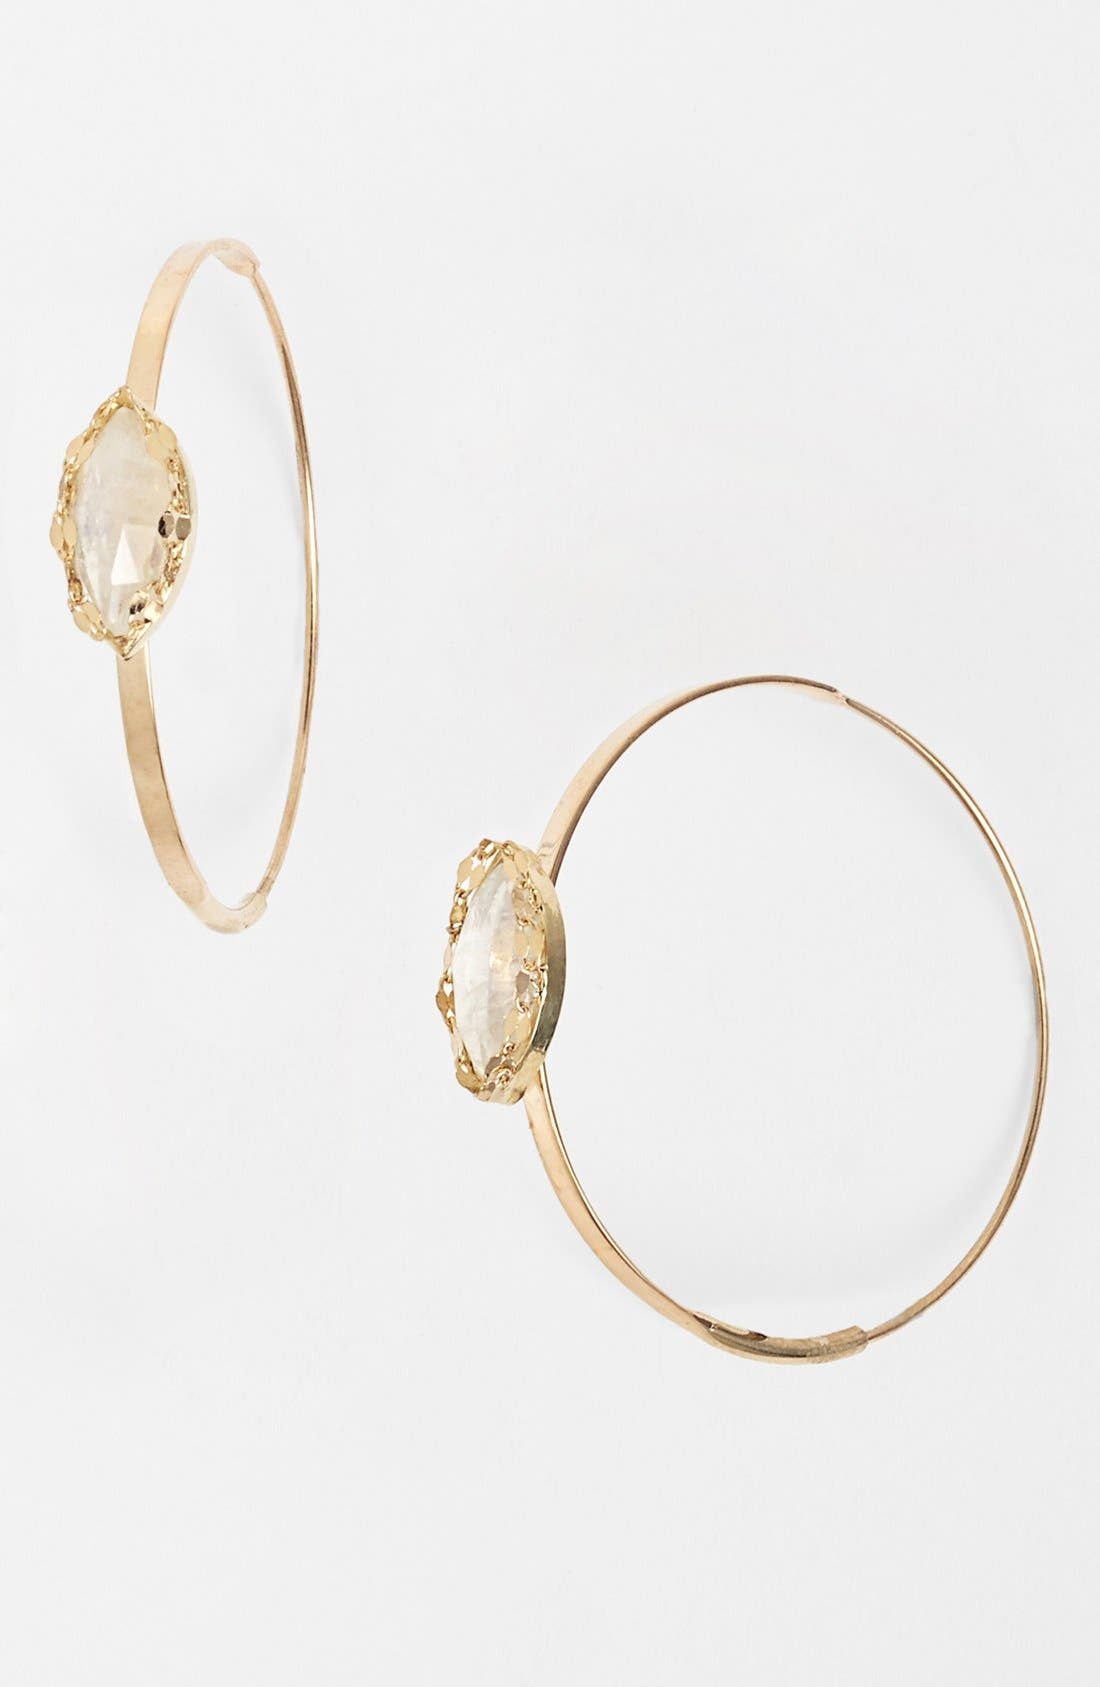 Main Image - Lana Jewelry 'Spellbound - Small Flat Magic' Station Hoop Earrings